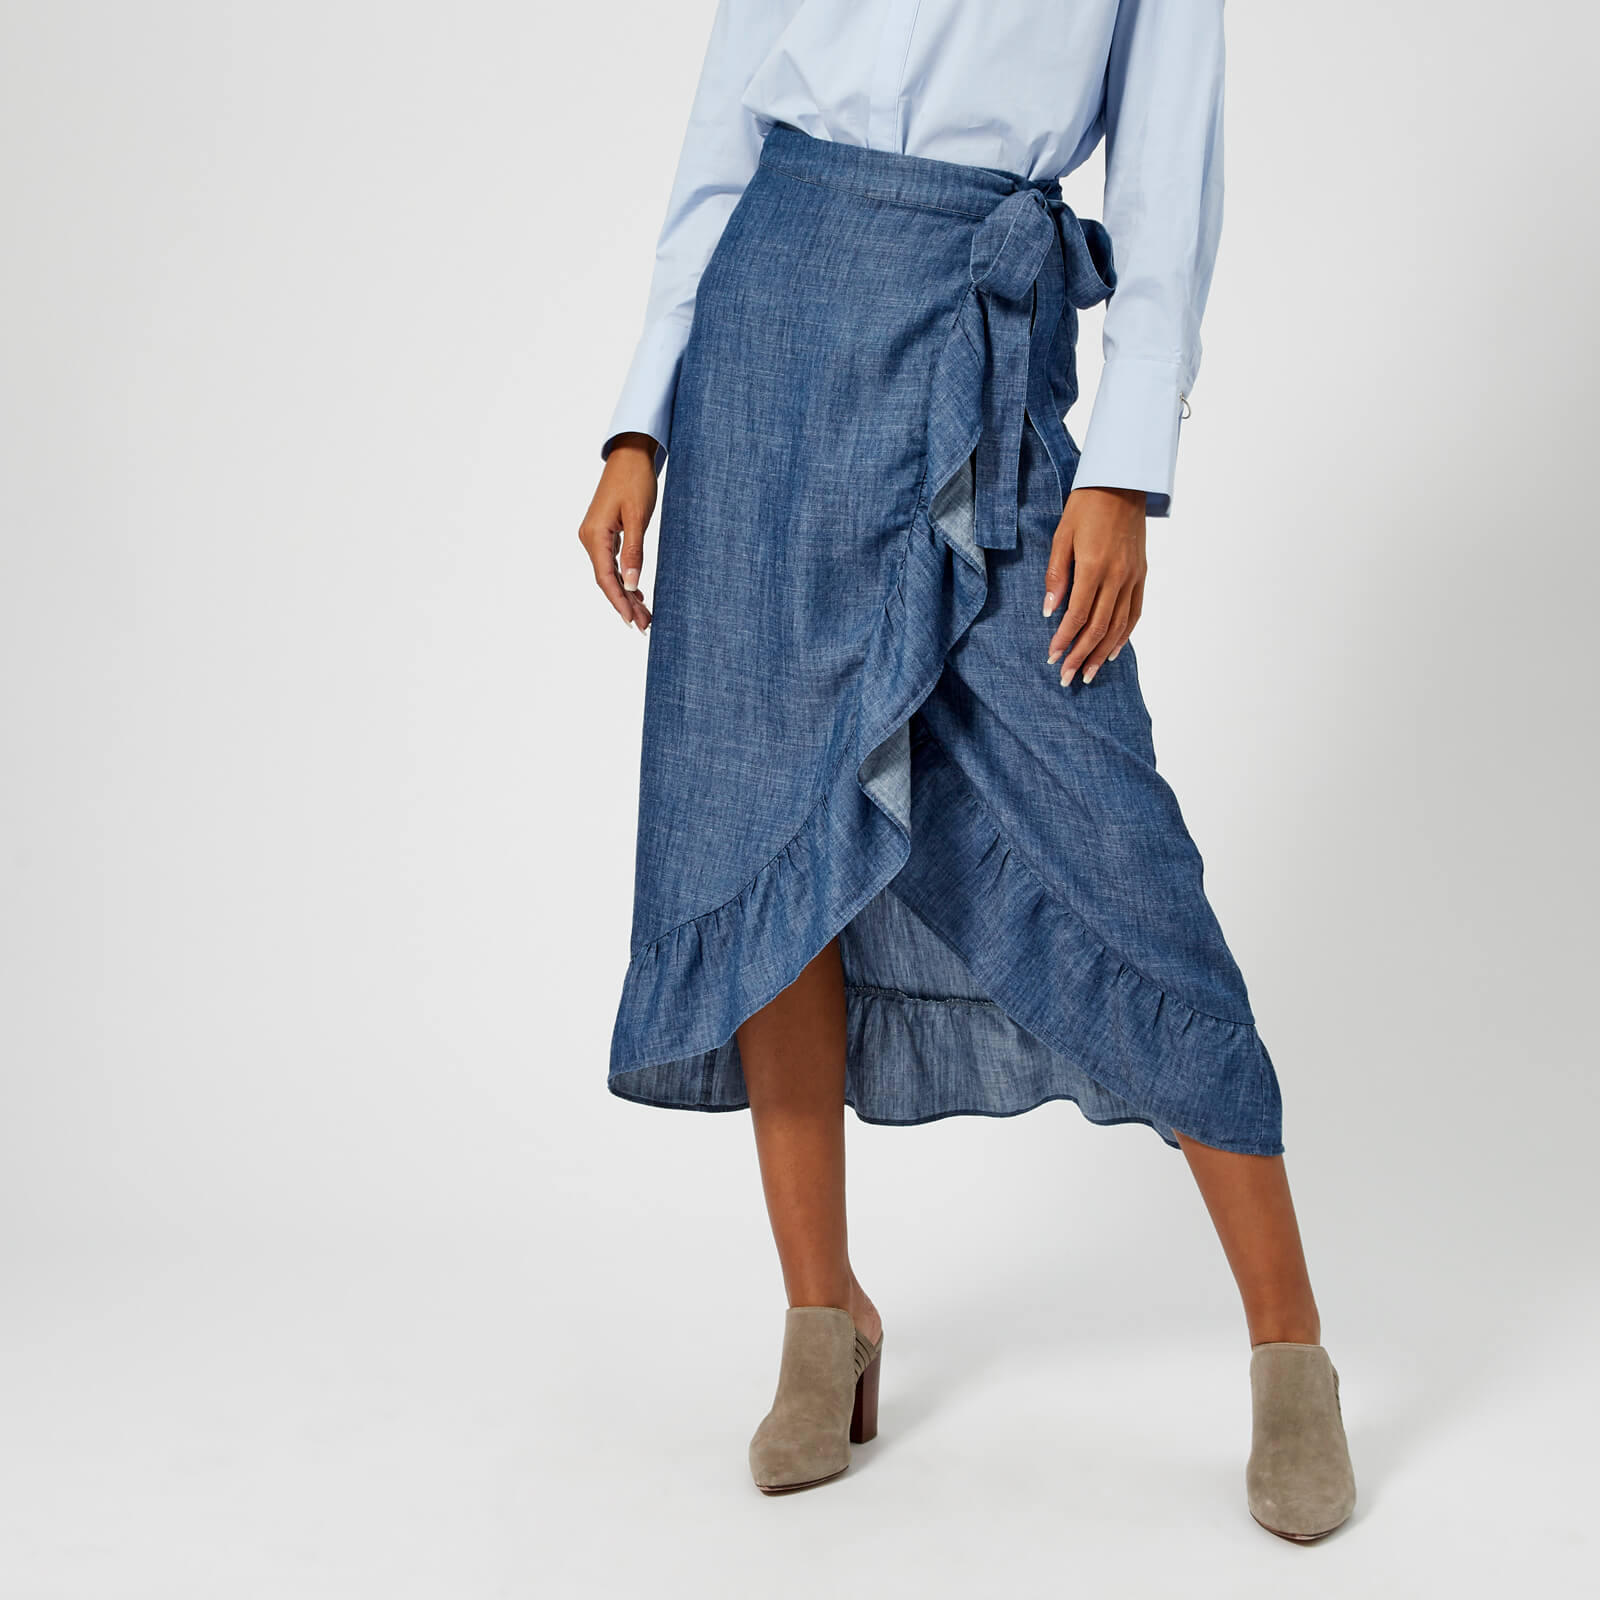 899cd07d243 Gestuz Women's Cyndie Denim Skirt with Tie Waist And Frill Detail - Denim  Blue Womens Clothing | TheHut.com